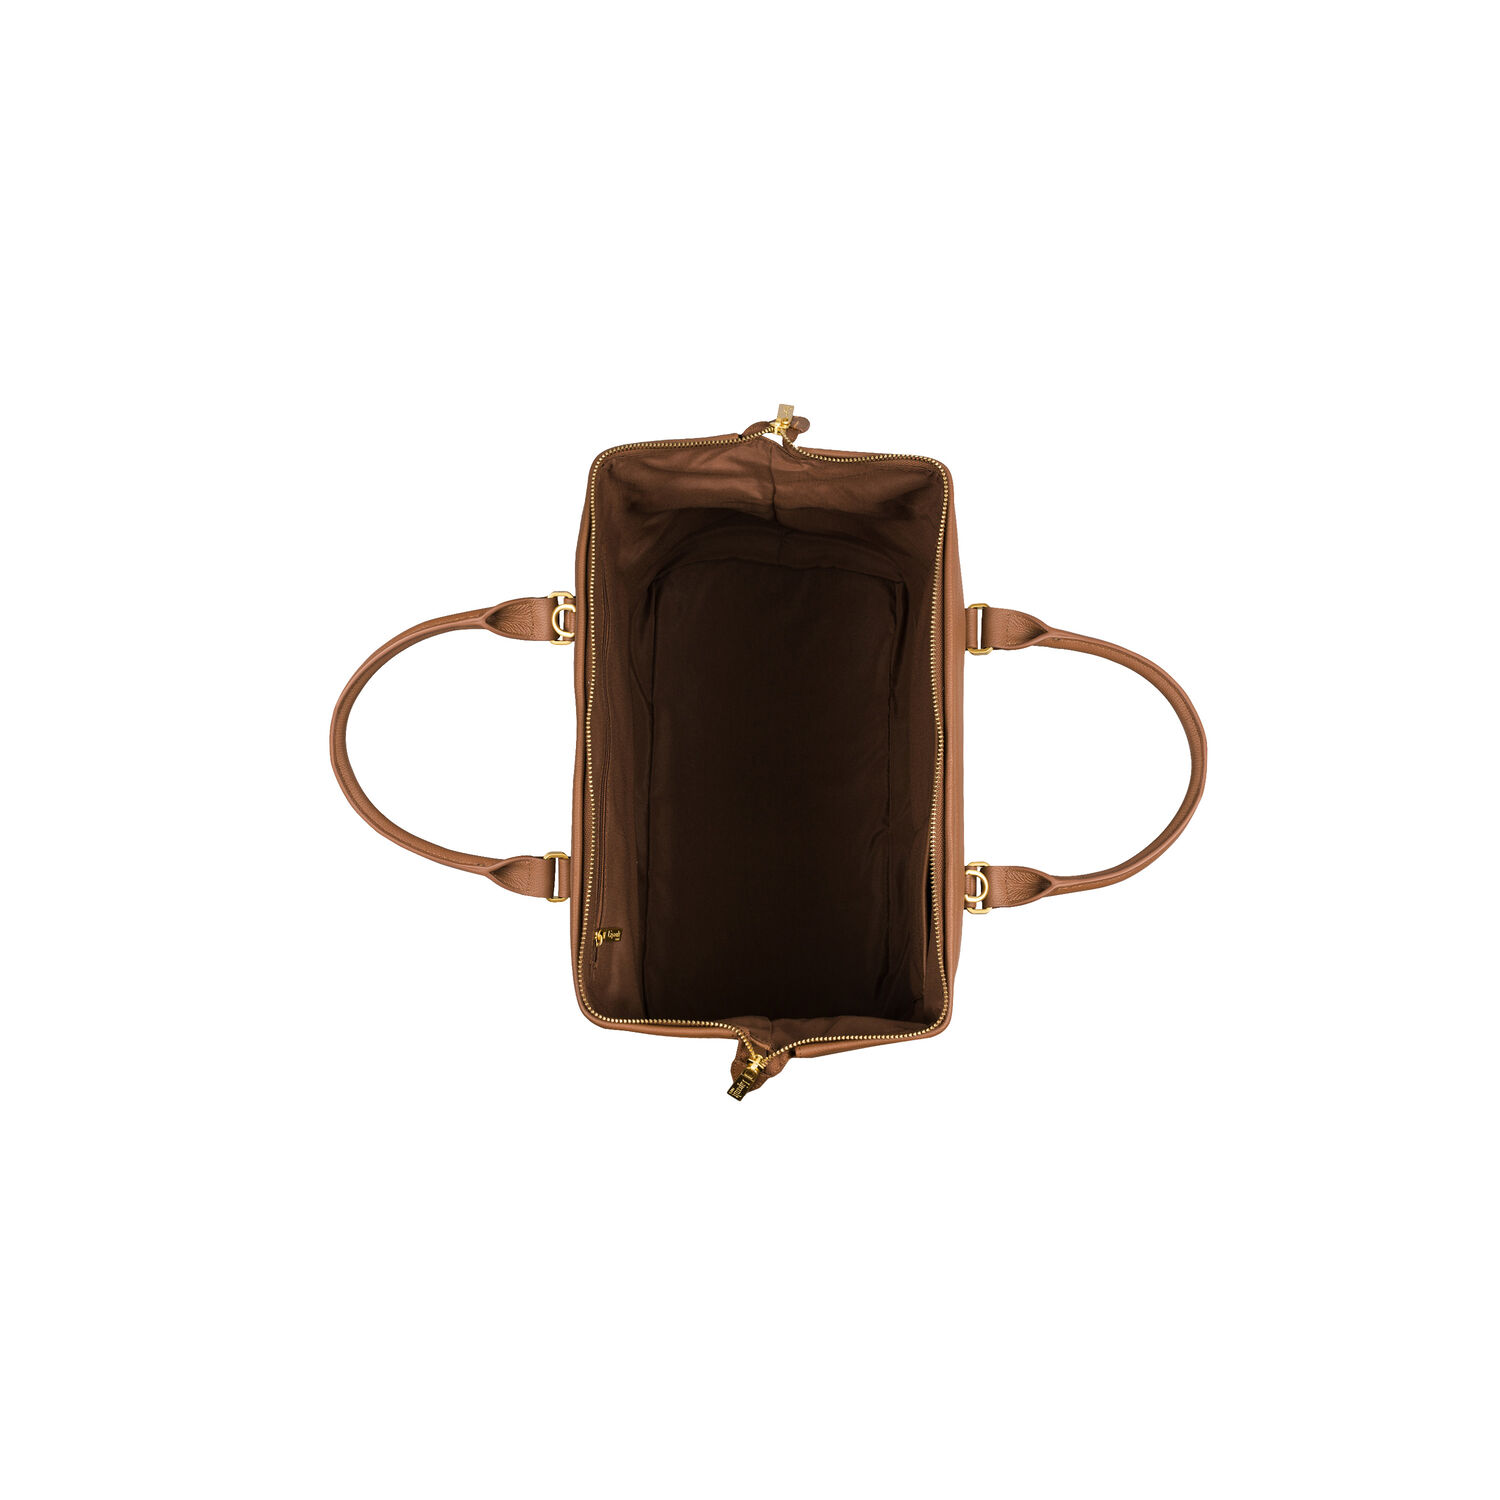 Lipault Plume Elegance Bowling Bag M In The Color Cognac Leather